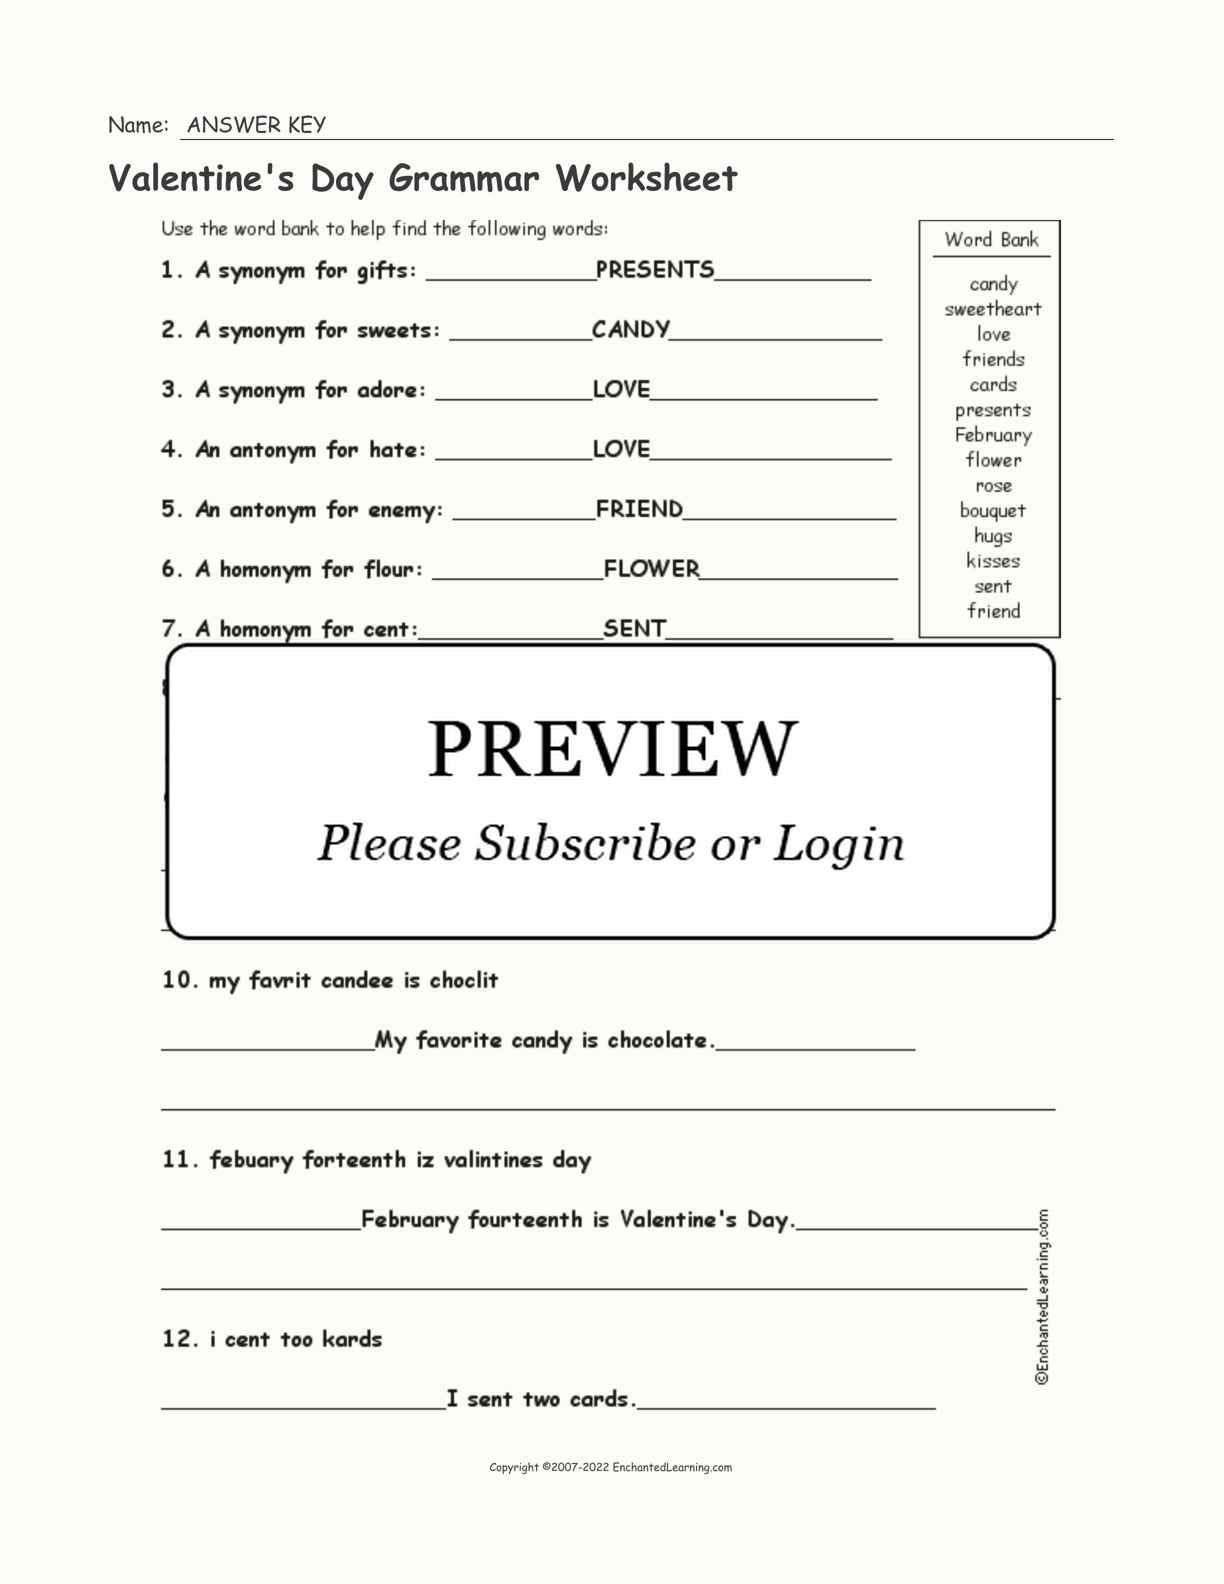 Valentine's Day Grammar Worksheet interactive worksheet page 2